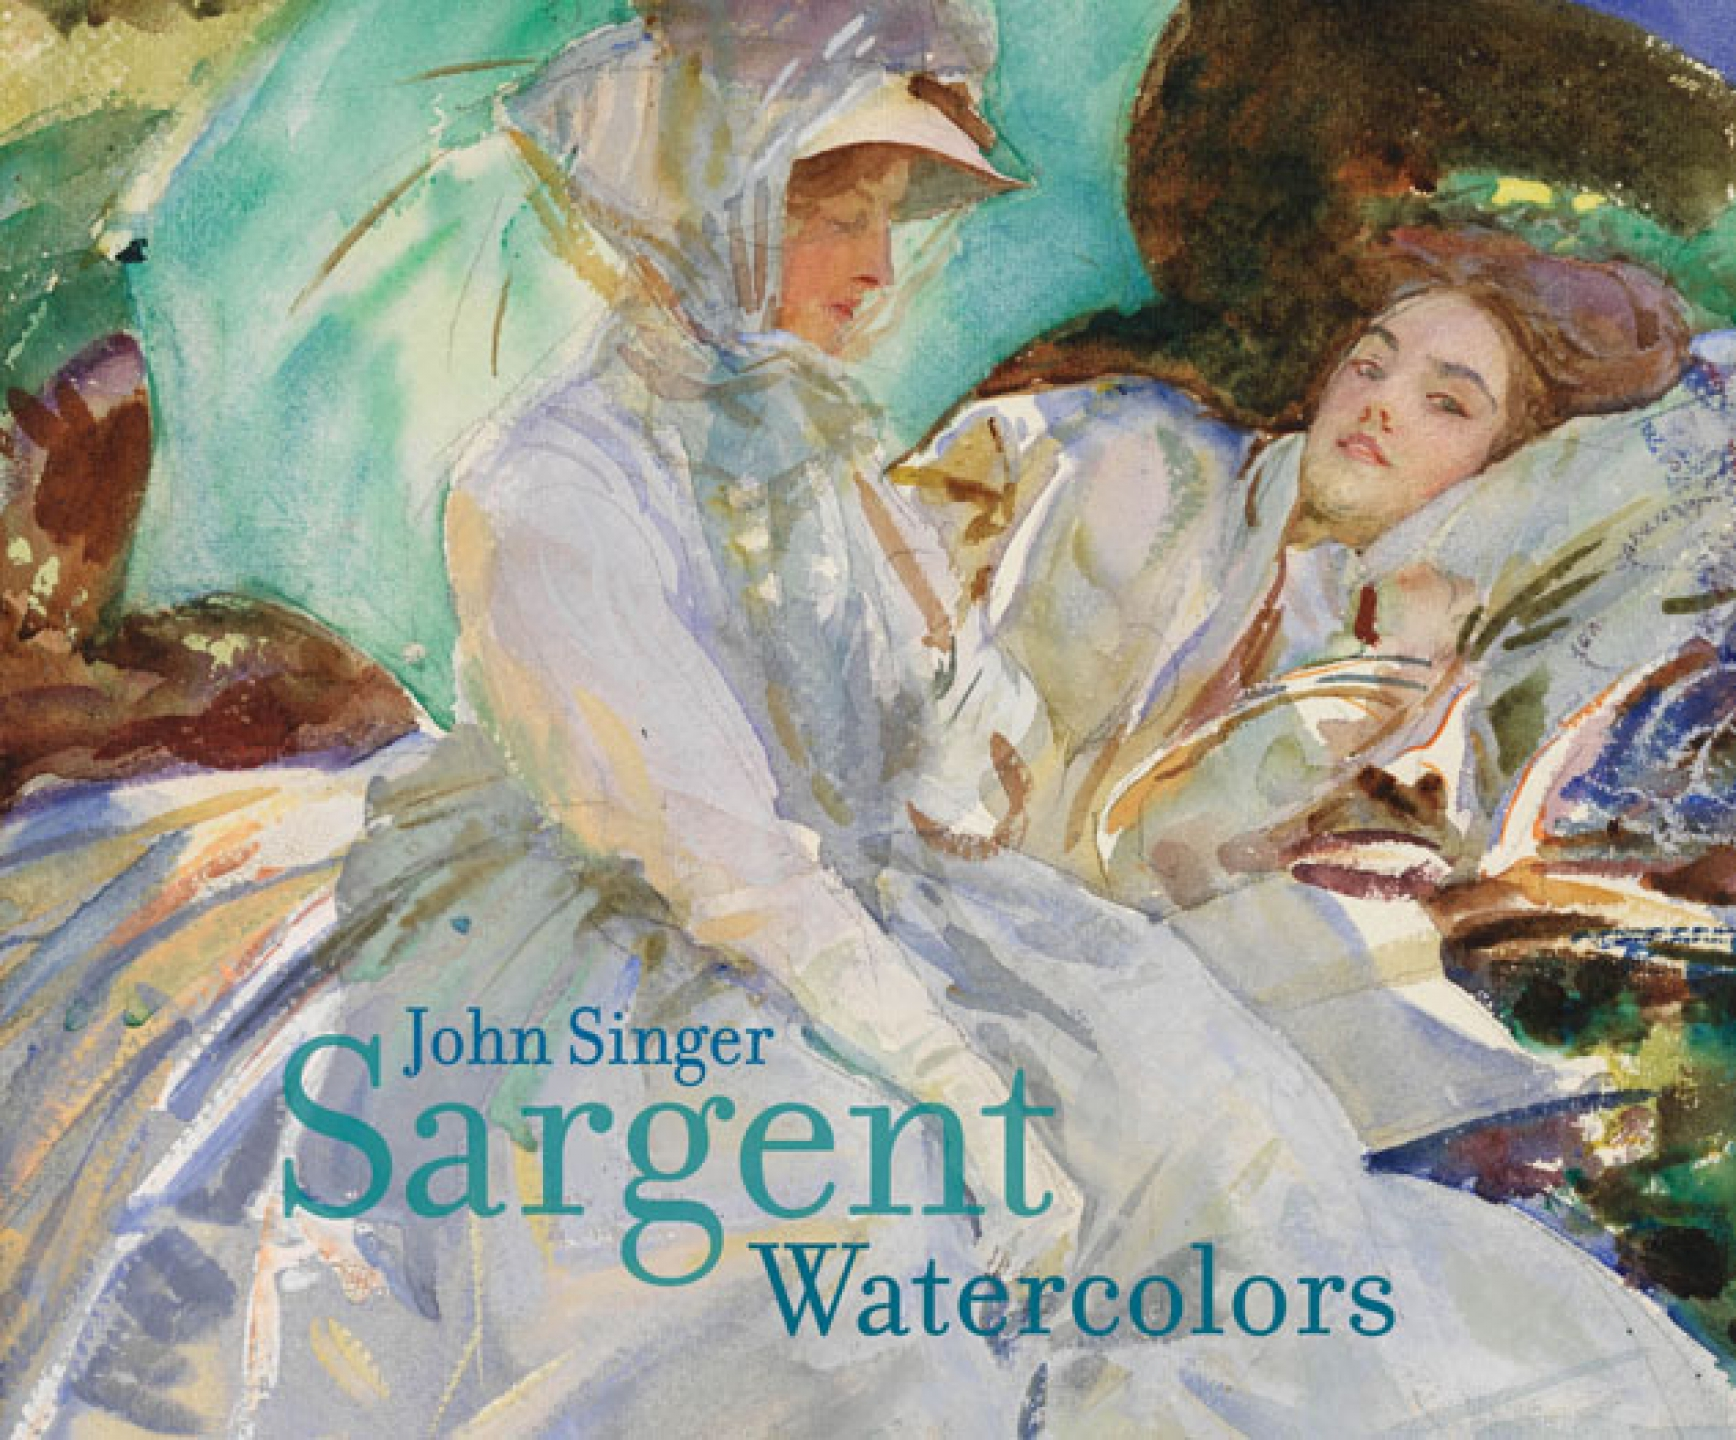 Watercolor artist magazine review - 1